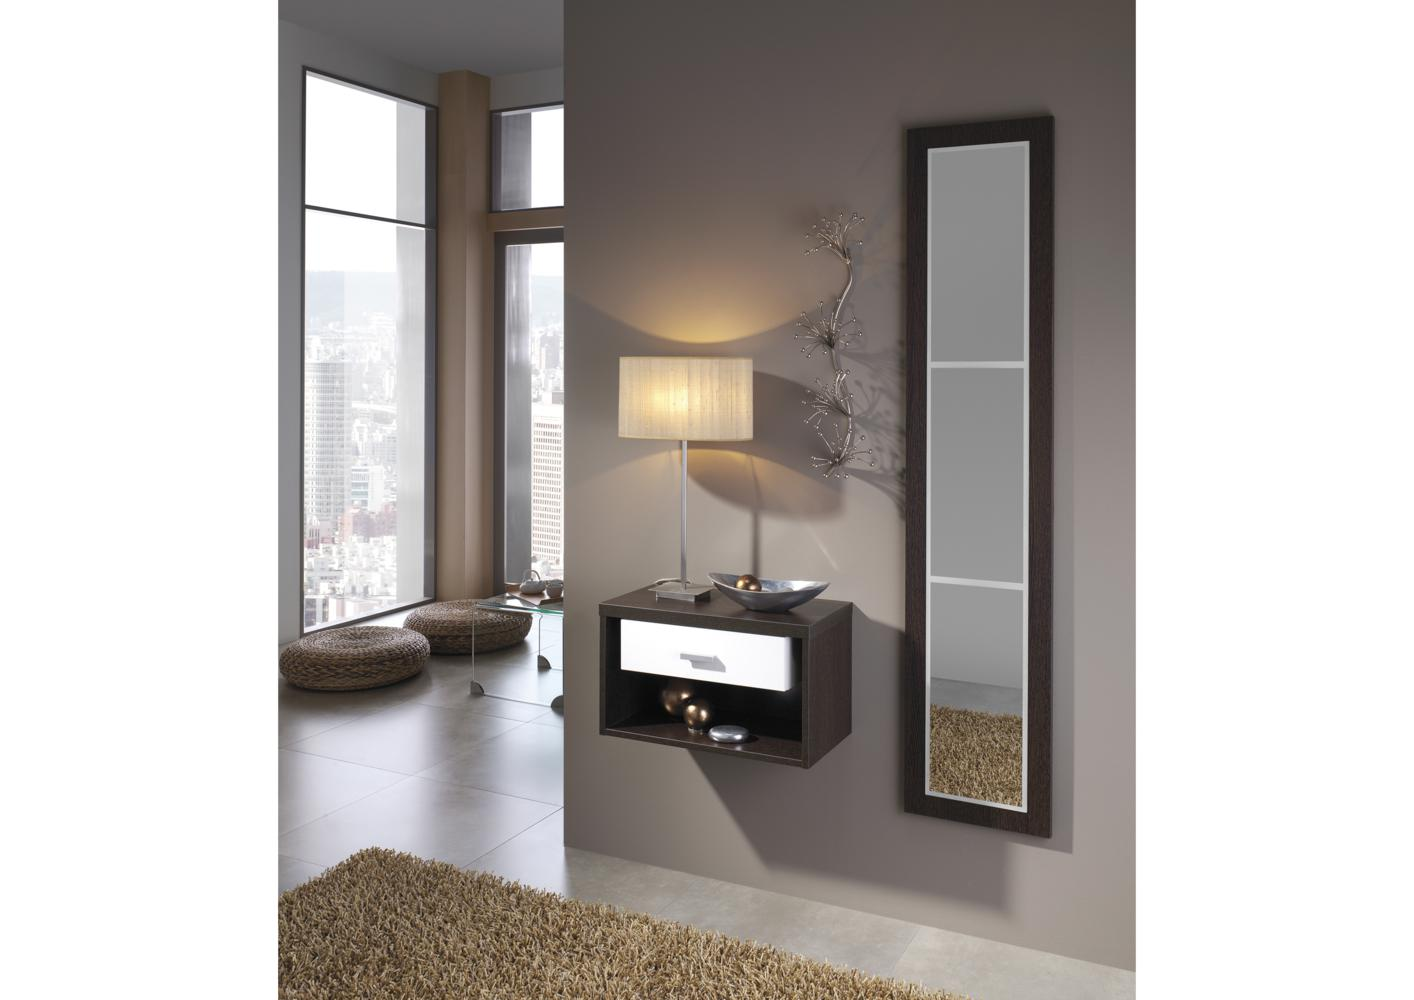 armoire entree avec miroir. Black Bedroom Furniture Sets. Home Design Ideas